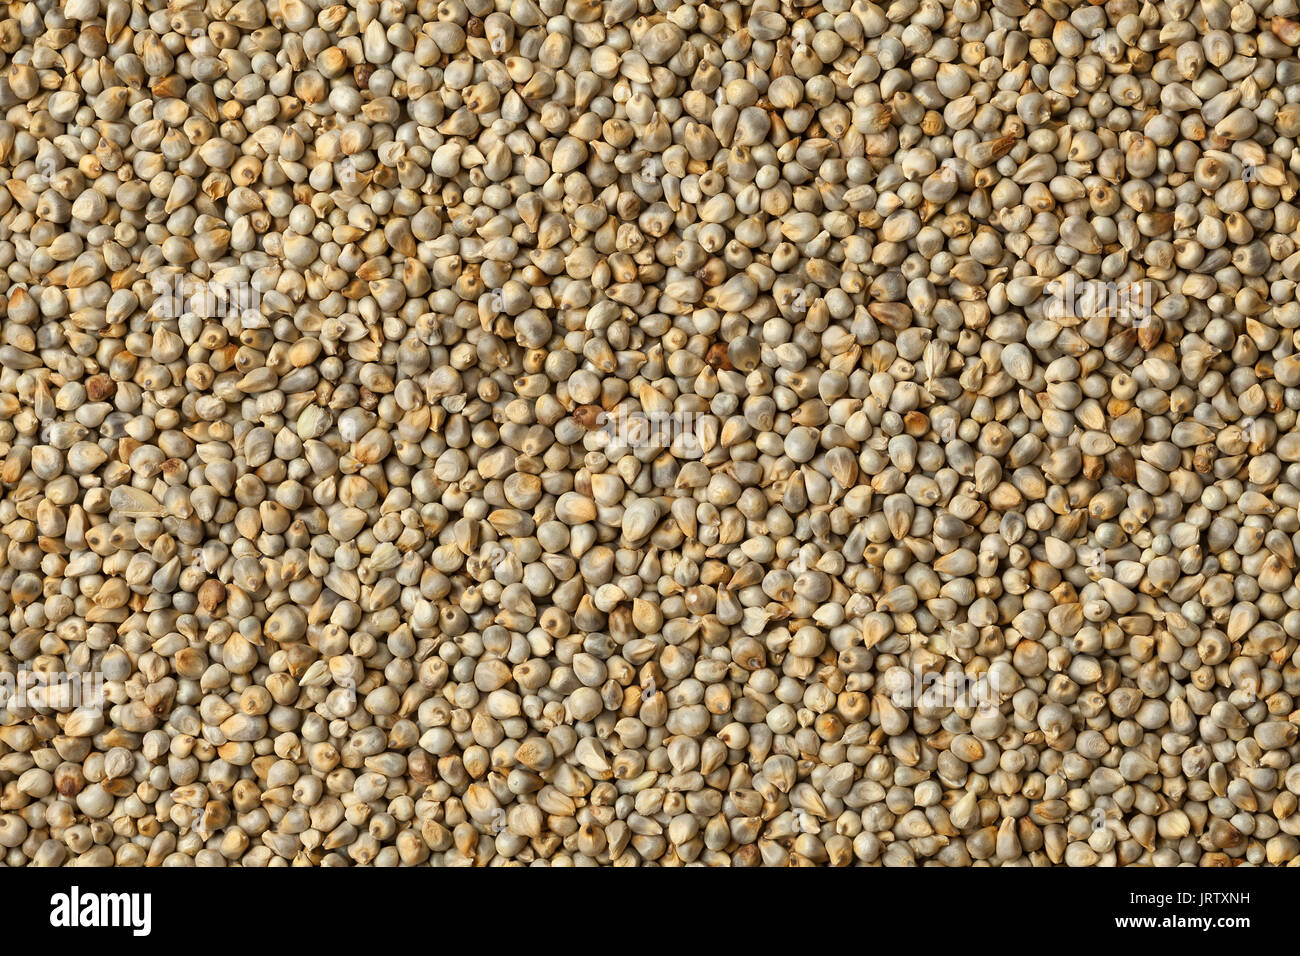 Pearl millet close up full frame - Stock Image